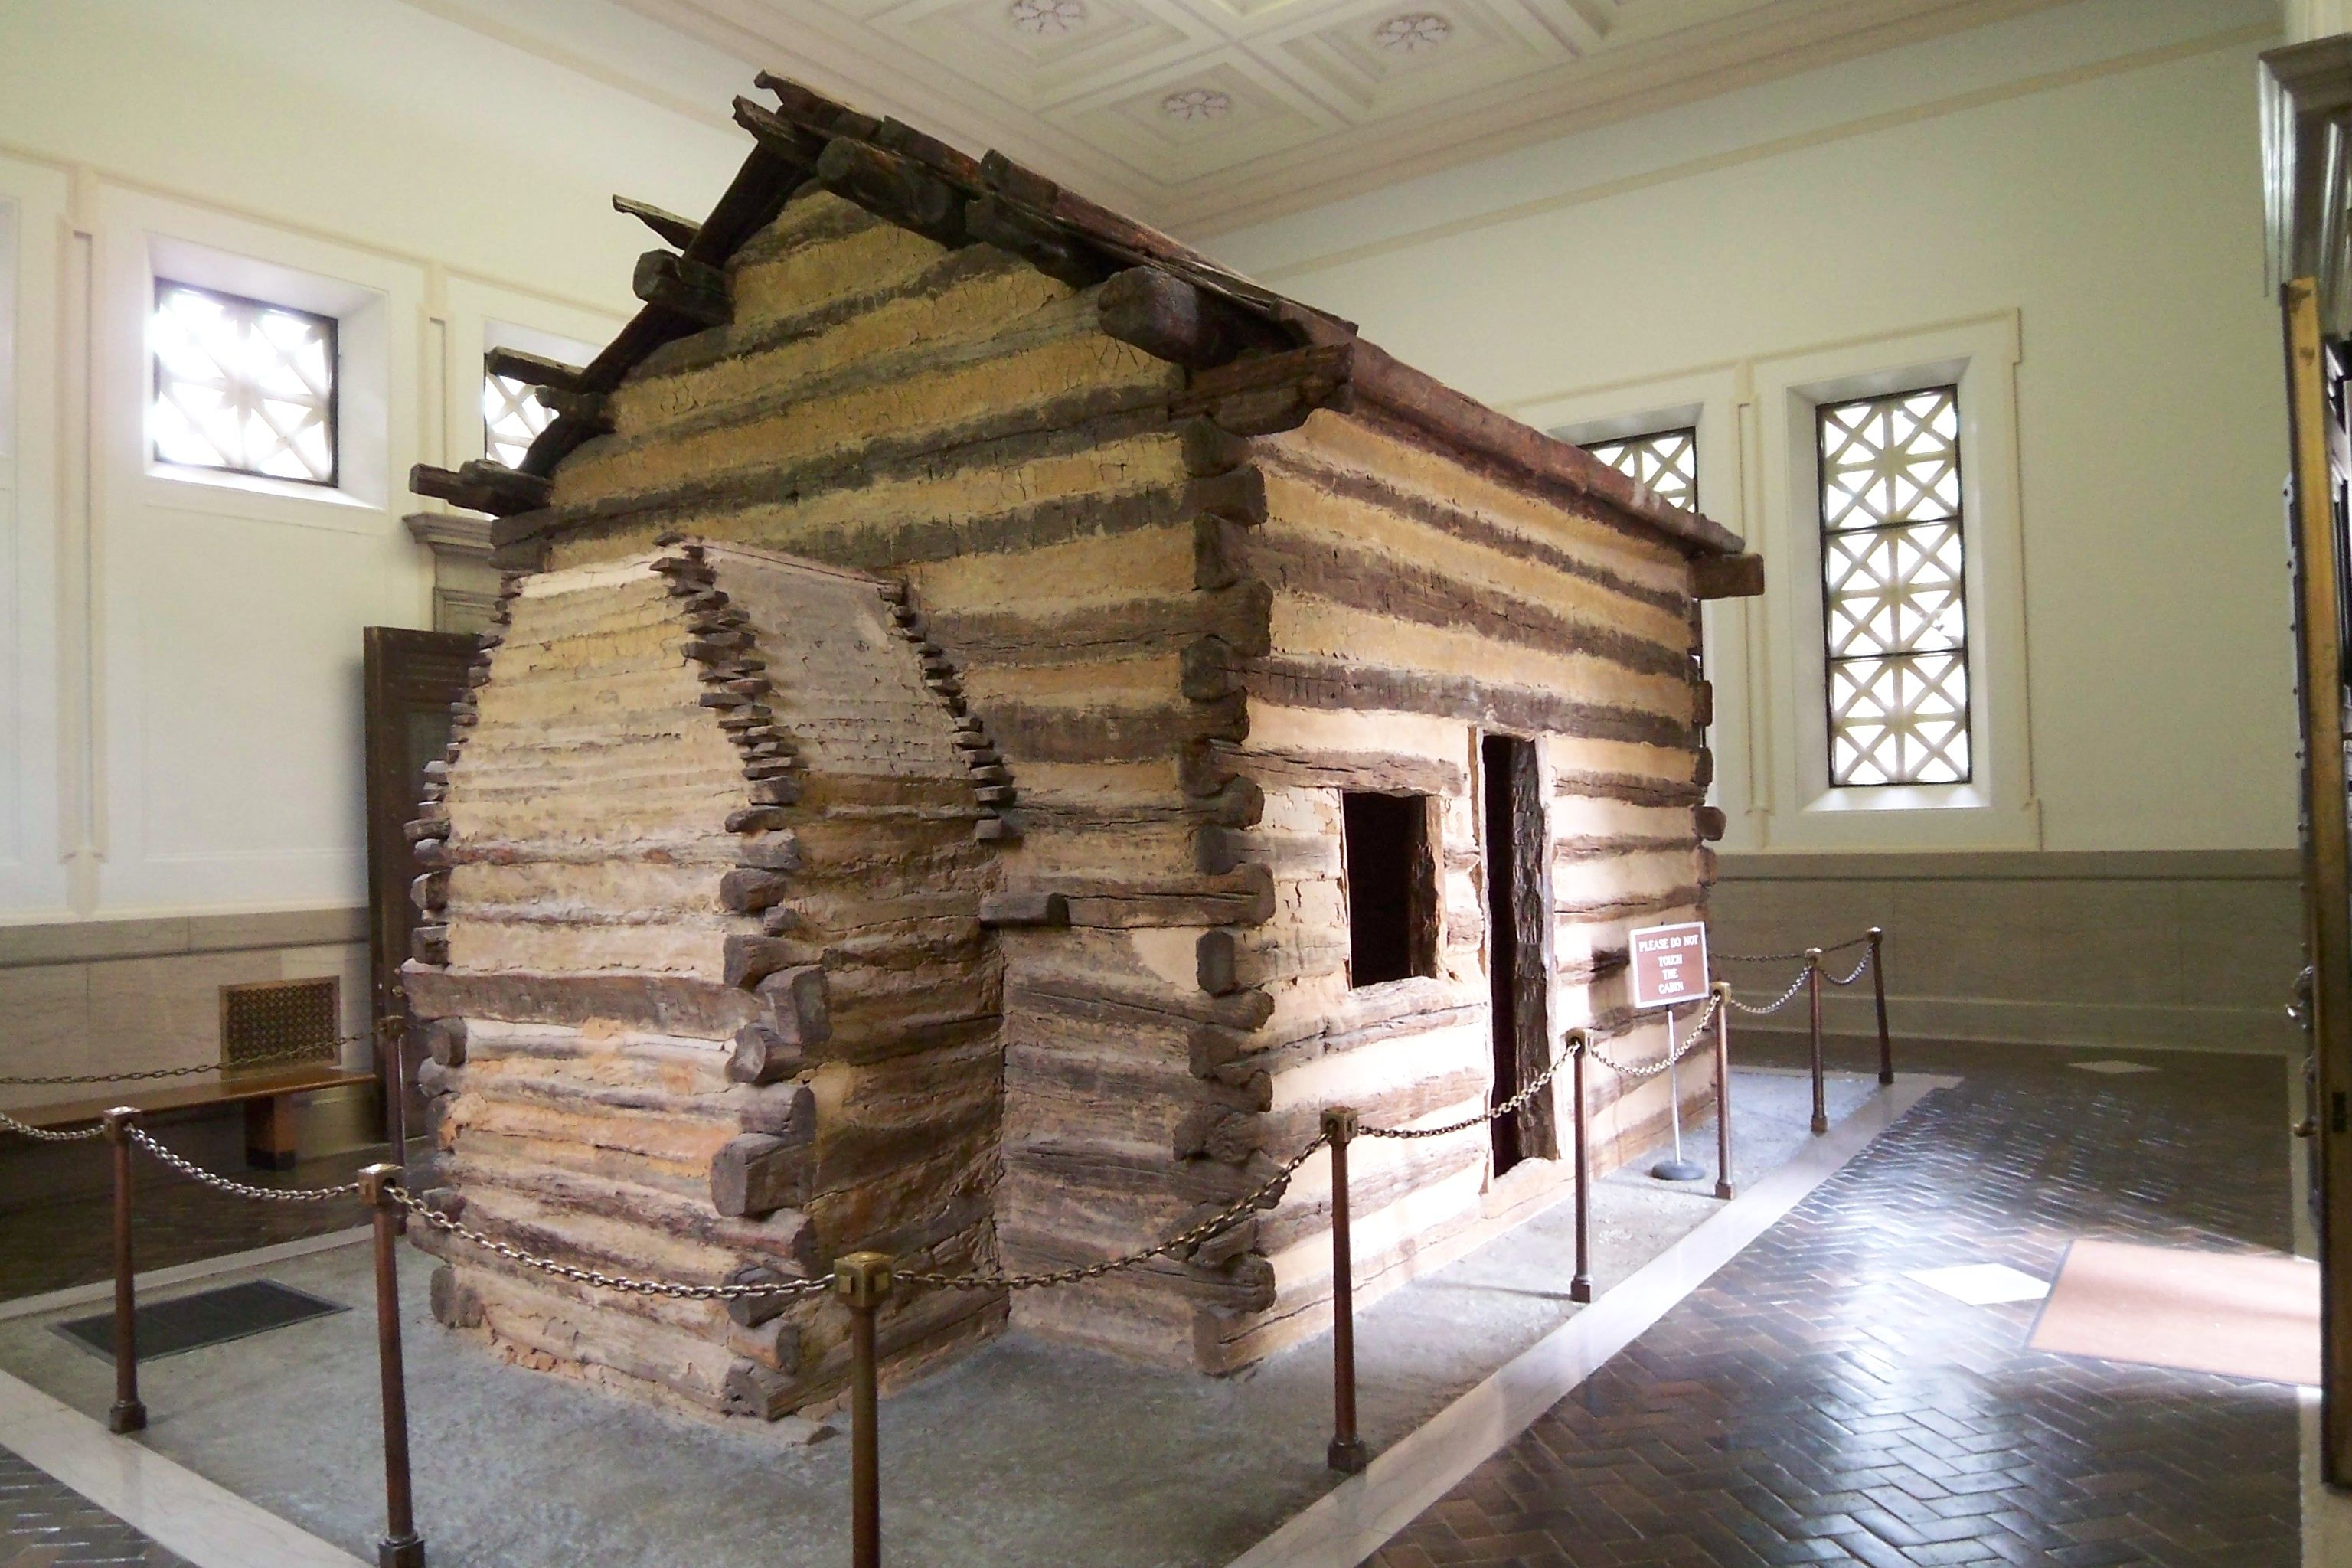 Hodgenville Ky Birthplace Of Abraham Lincoln Abraham Lincoln Birthplace Abraham Lincoln Boyhood Home Abraham Lincoln